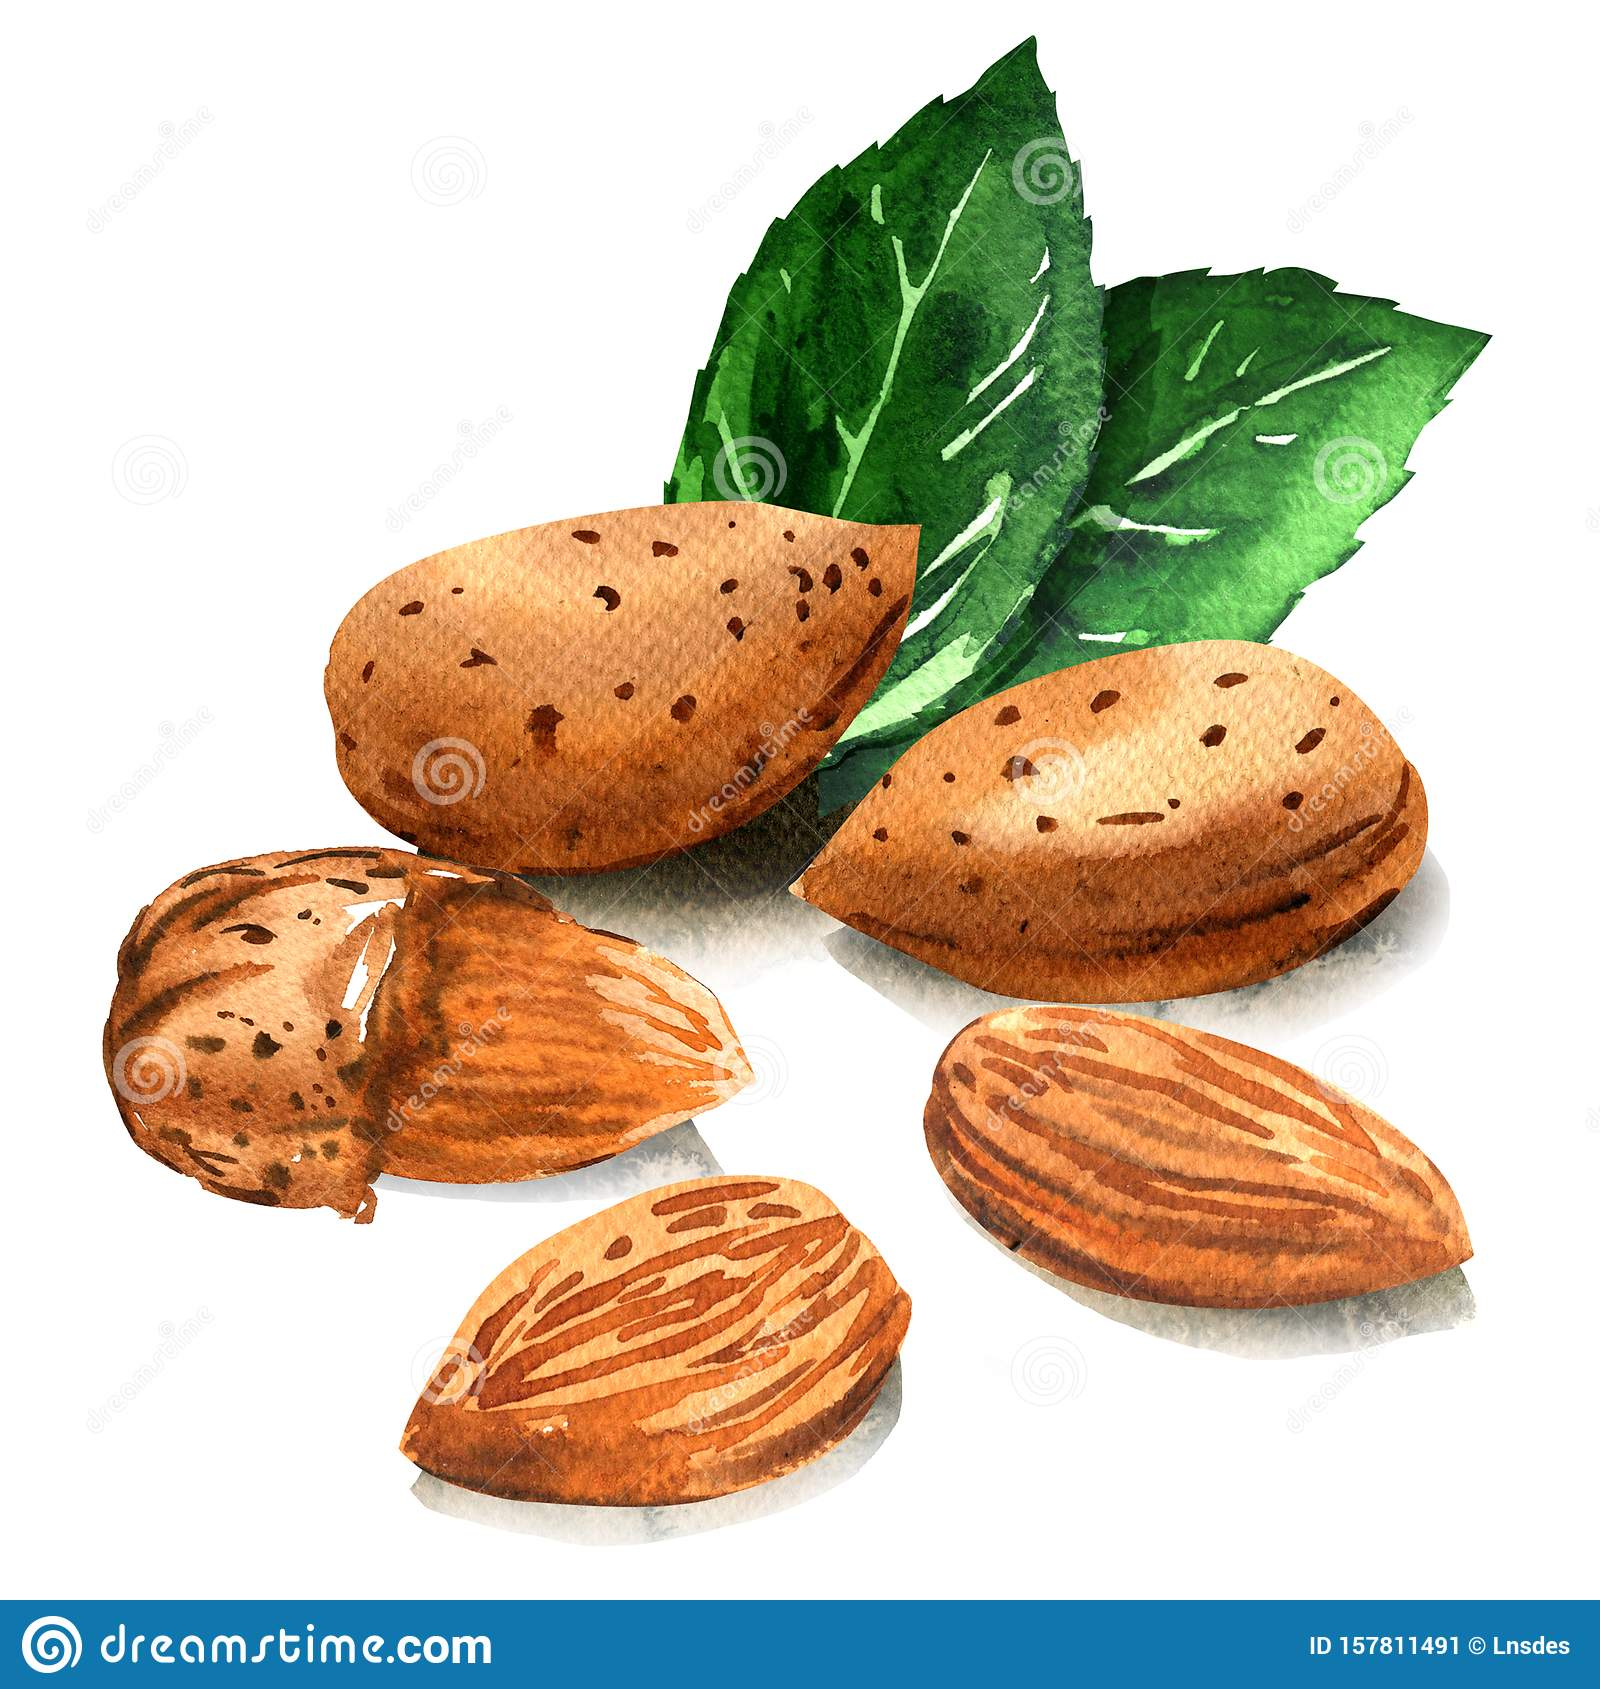 Group of tasty almond nut with green leaves, whole nuts in skins and peeled, isolated, hand drawn watercolor